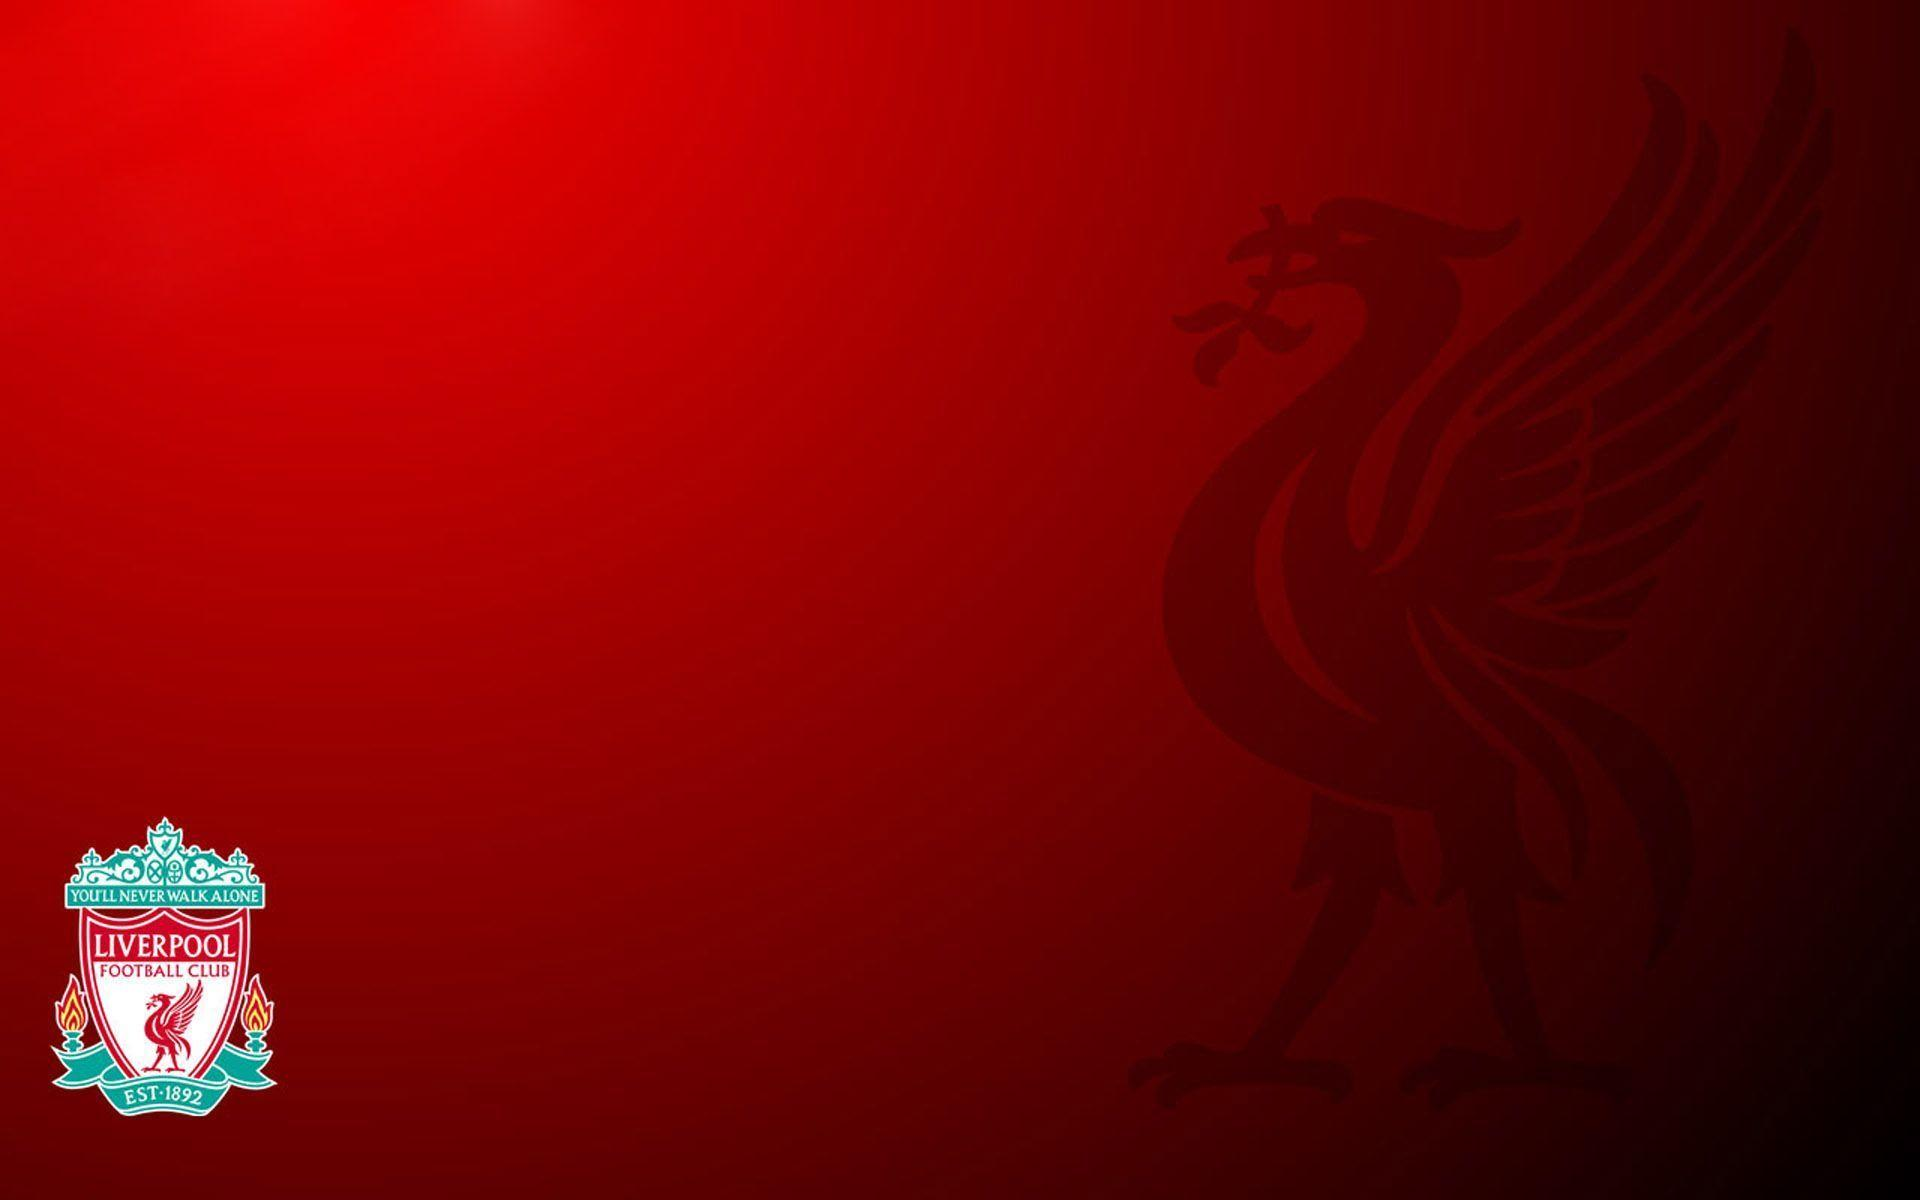 Liverpool Wallpapers 2016 1920x1200